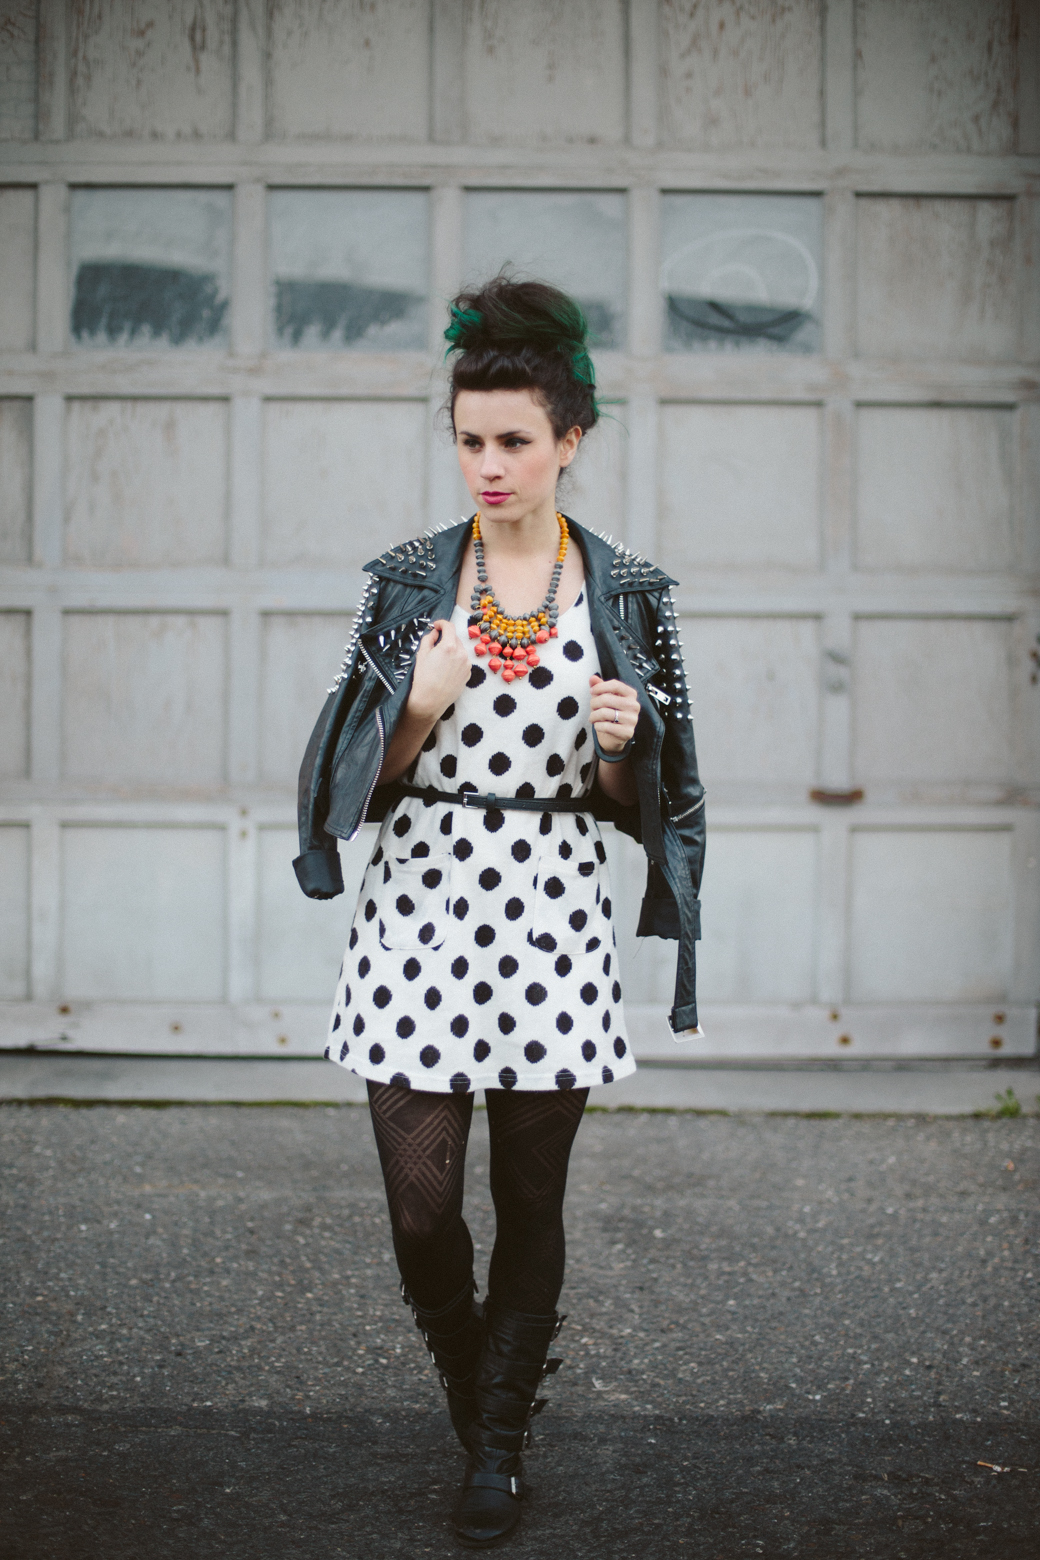 polka dot dress, studded jacket